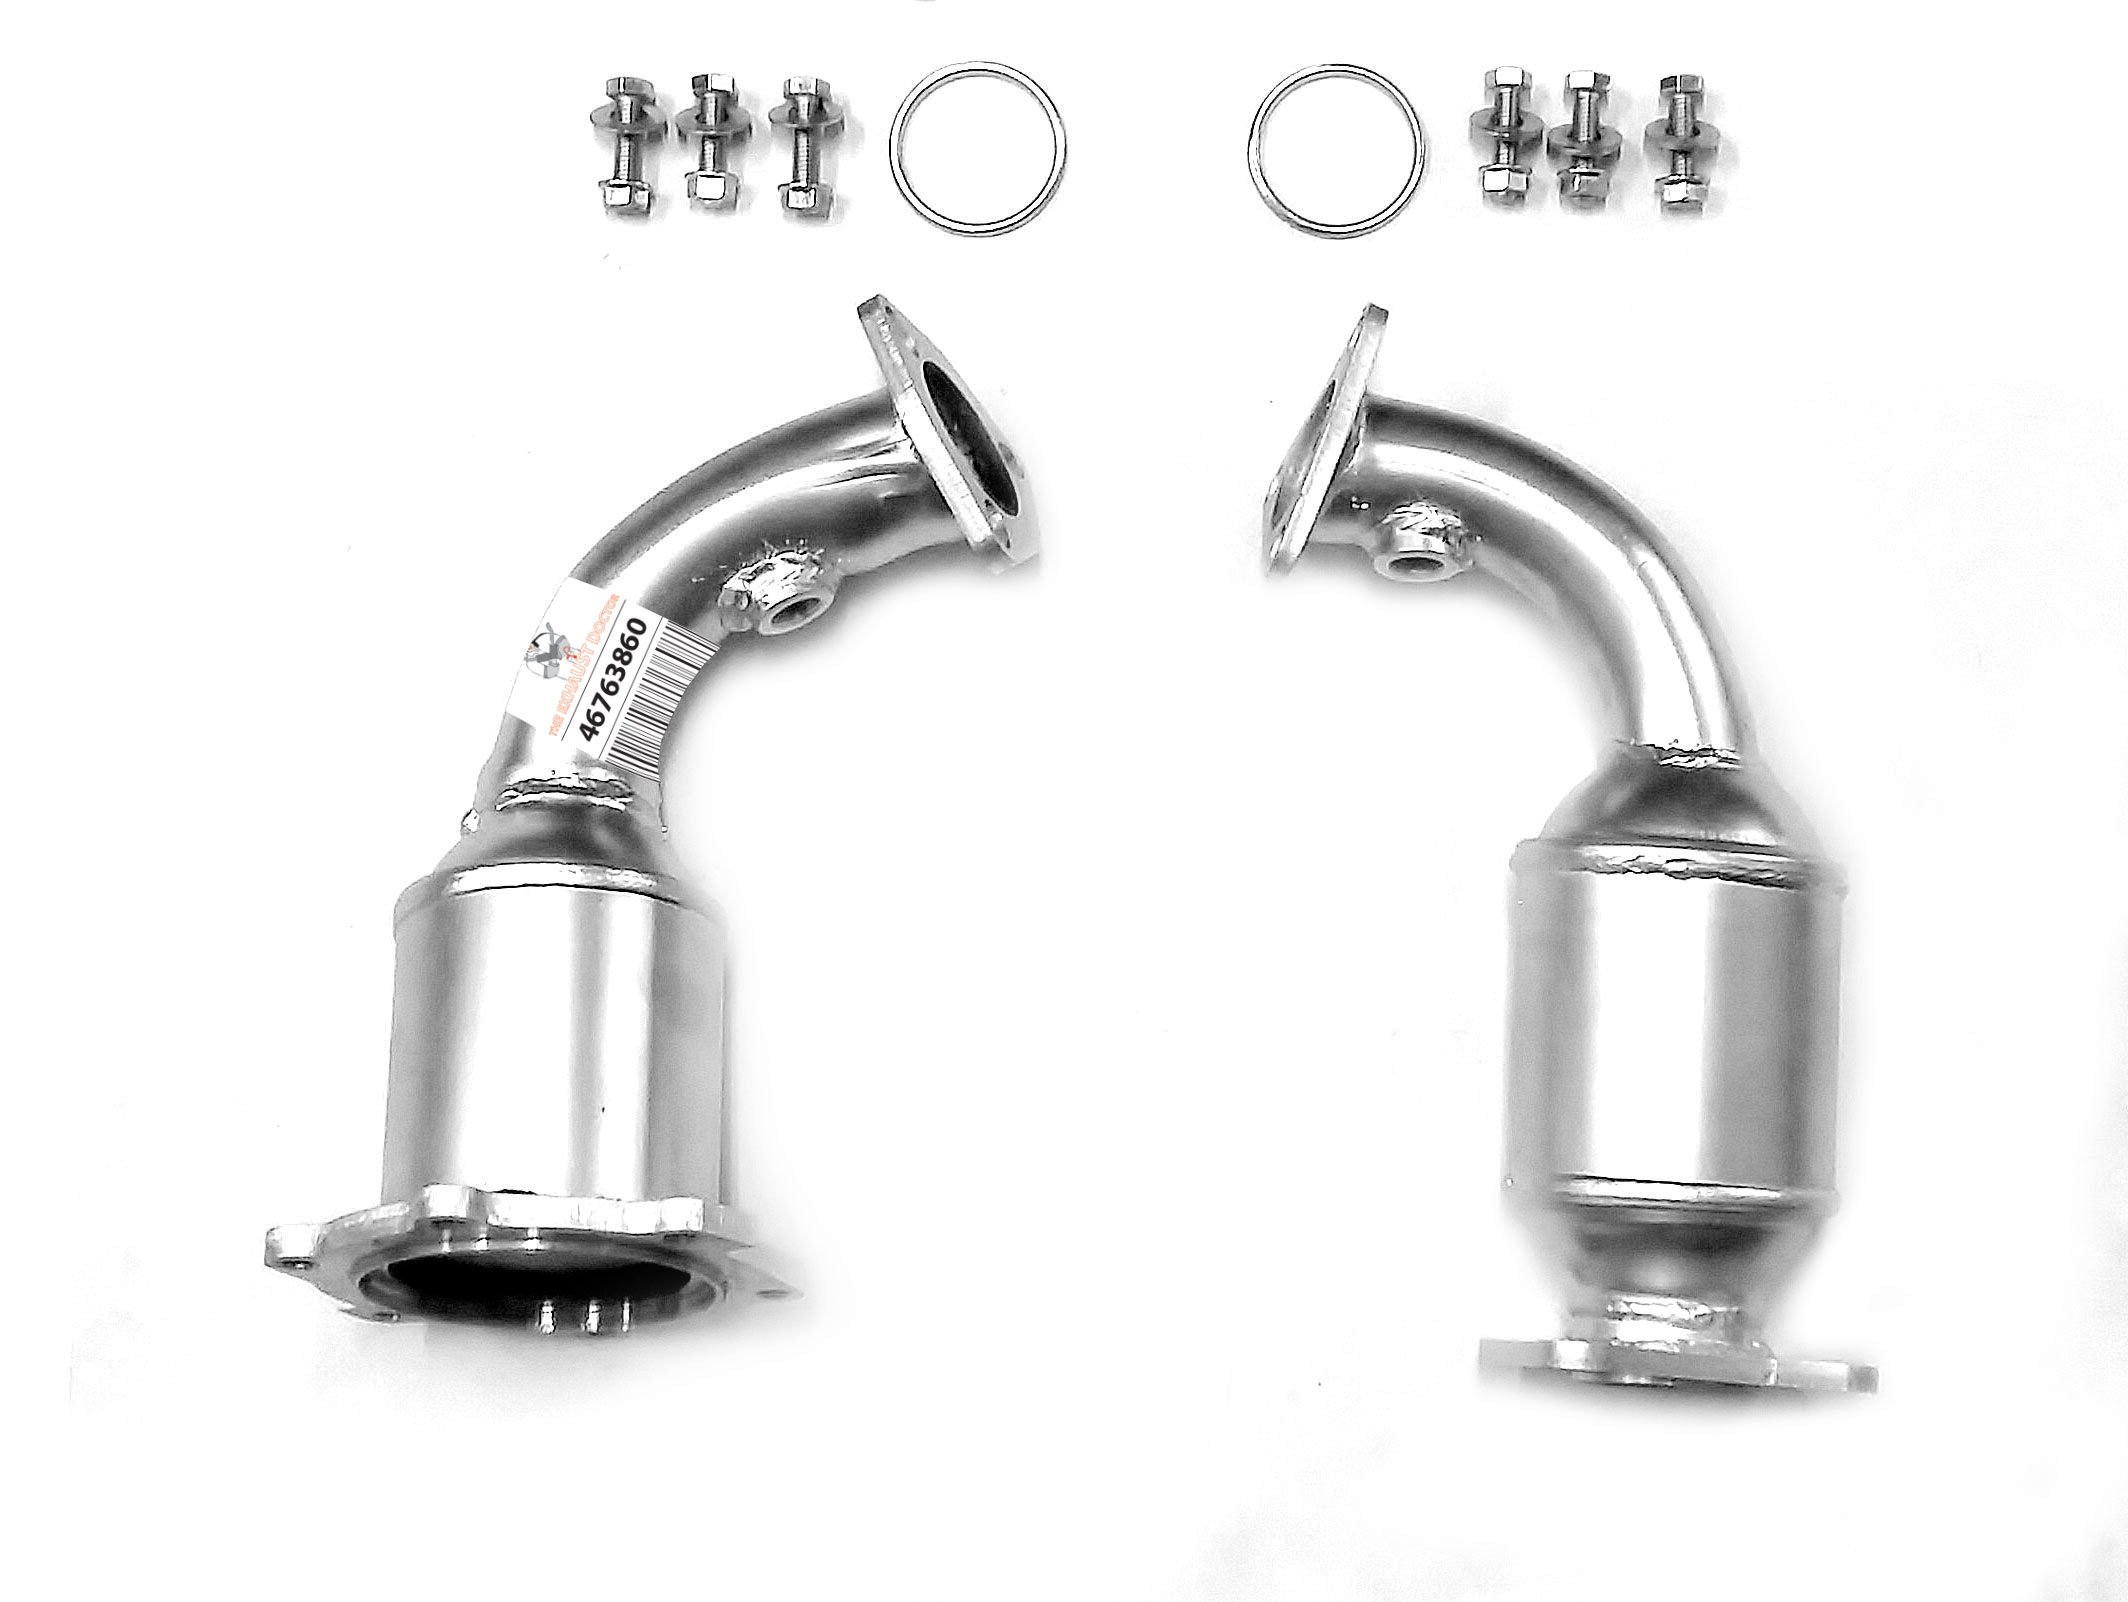 2009-2014 Nissan Murano 3.5L Y-Pipe Xotic Exhaust Catalytic Converter with Gaskets Included OBDII